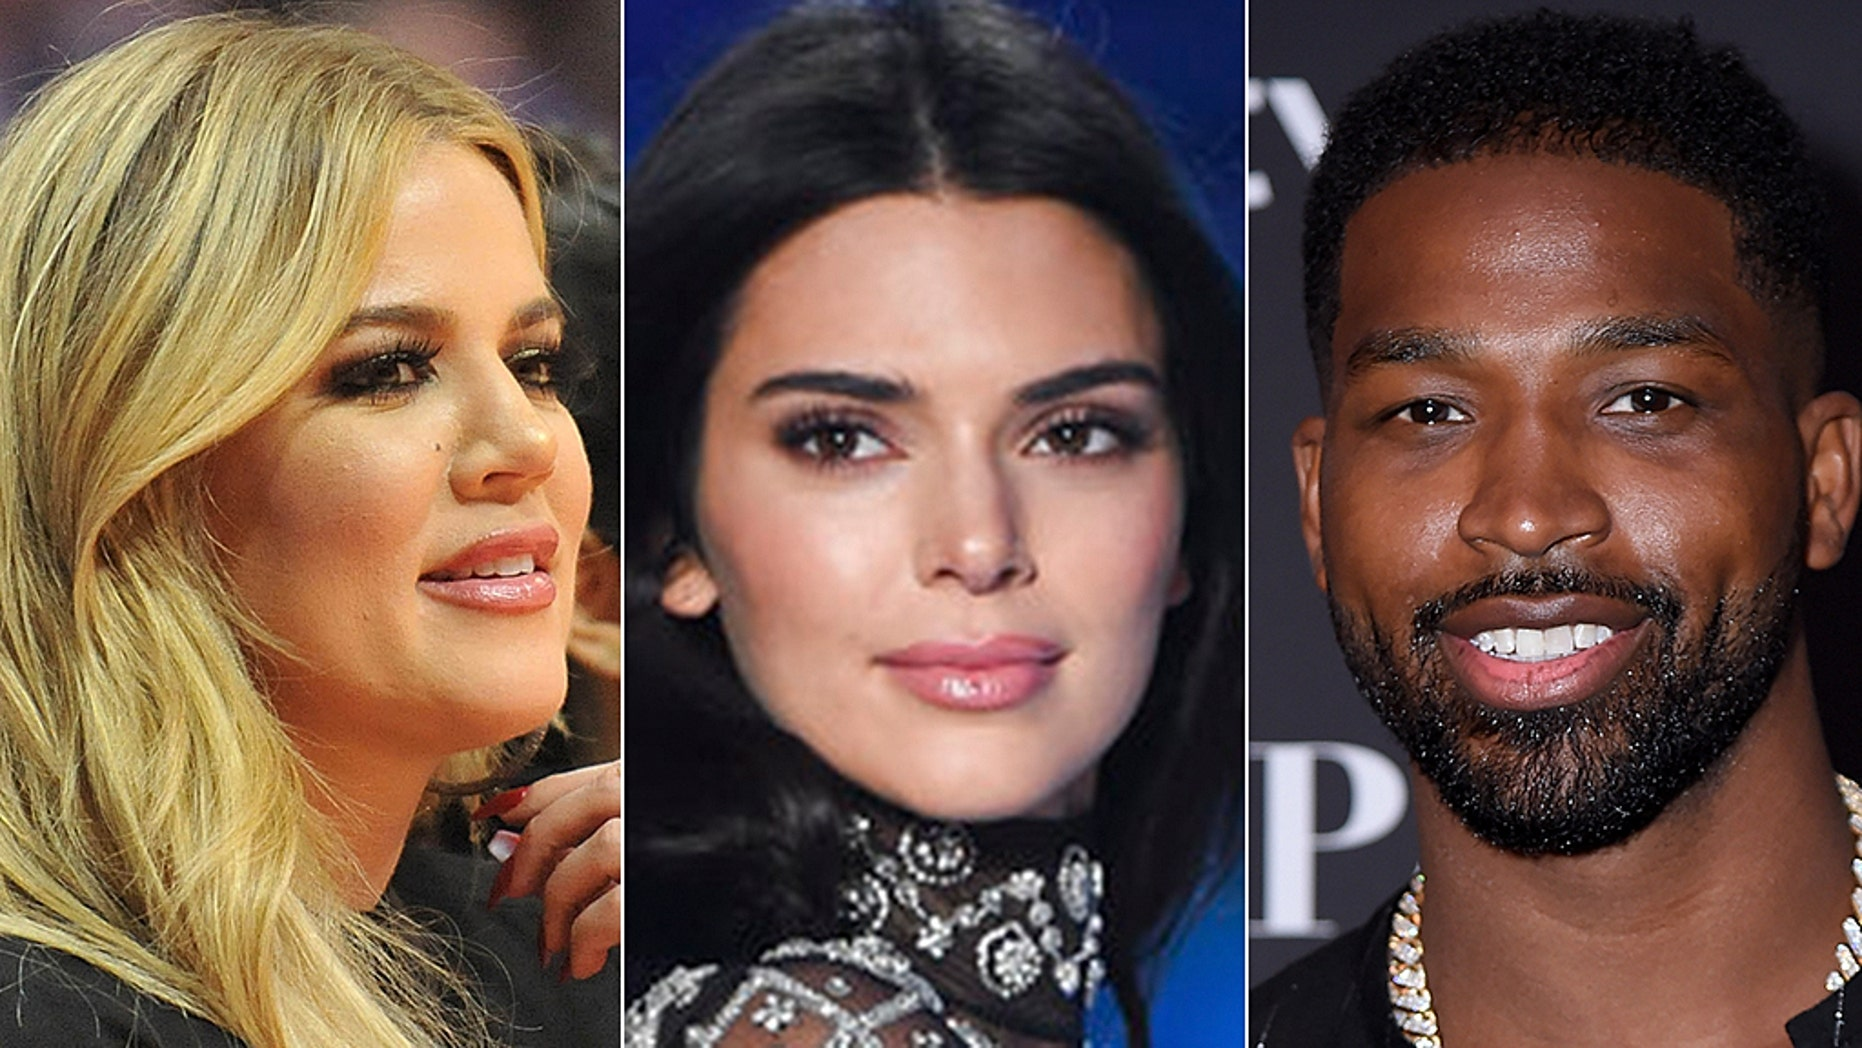 Khloe Kardashian defended her sister Kendall Jenner after she was caught booing Tristan Thompson.